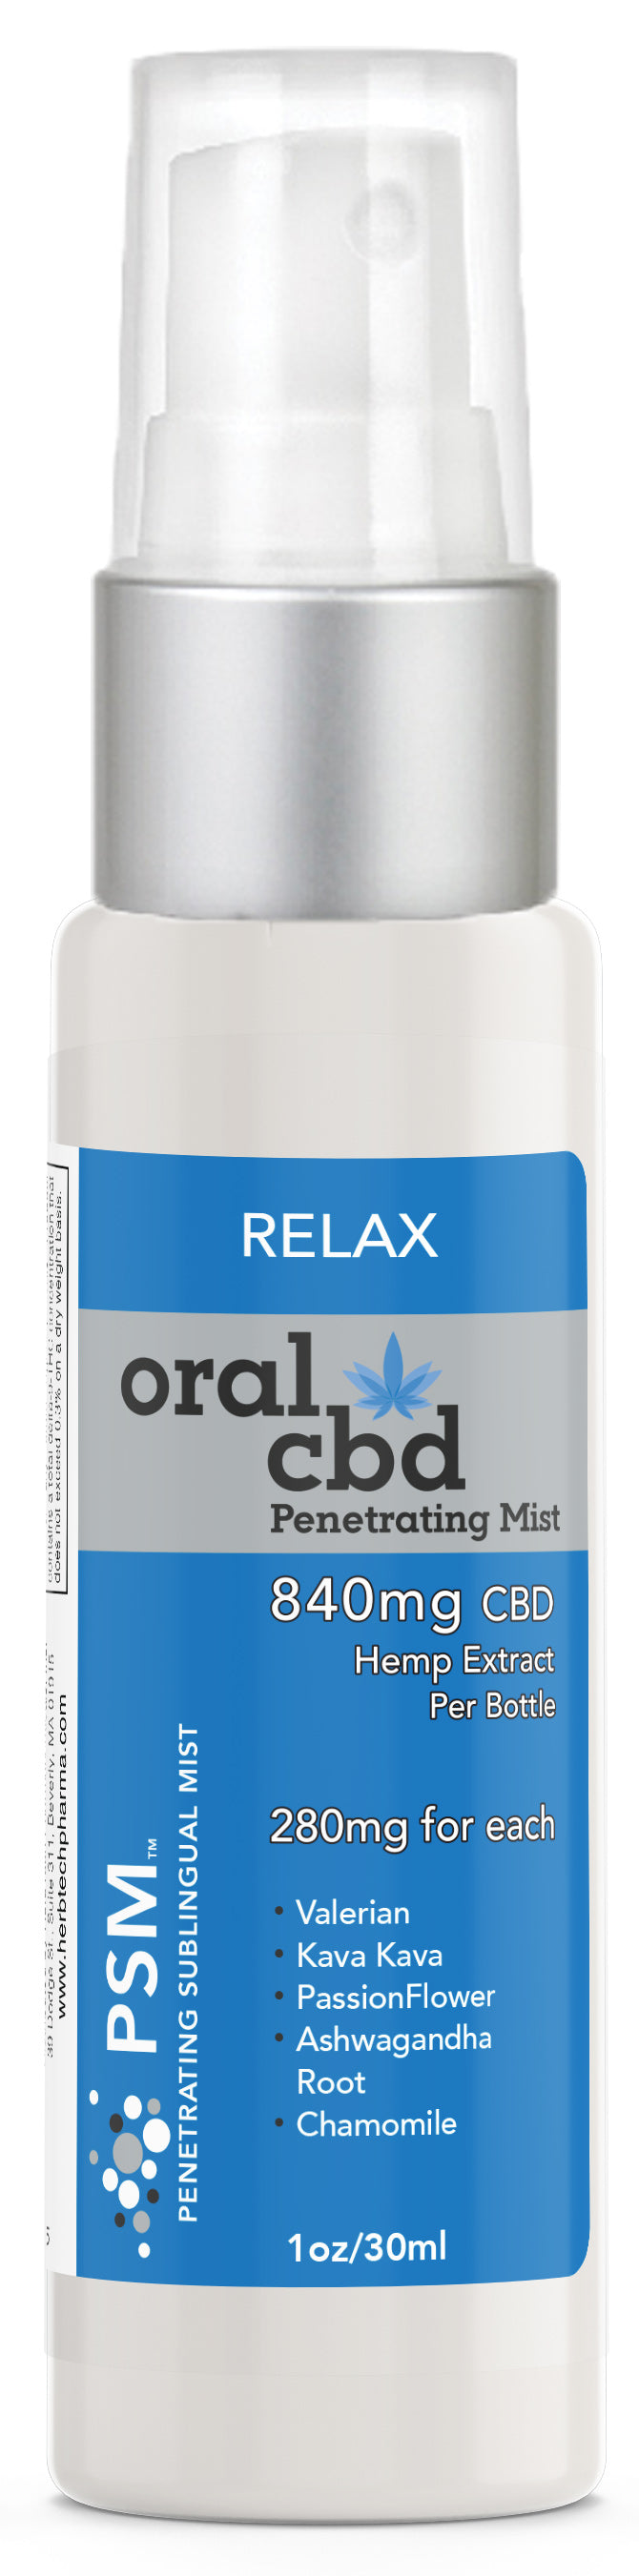 Oral CBD: Relax